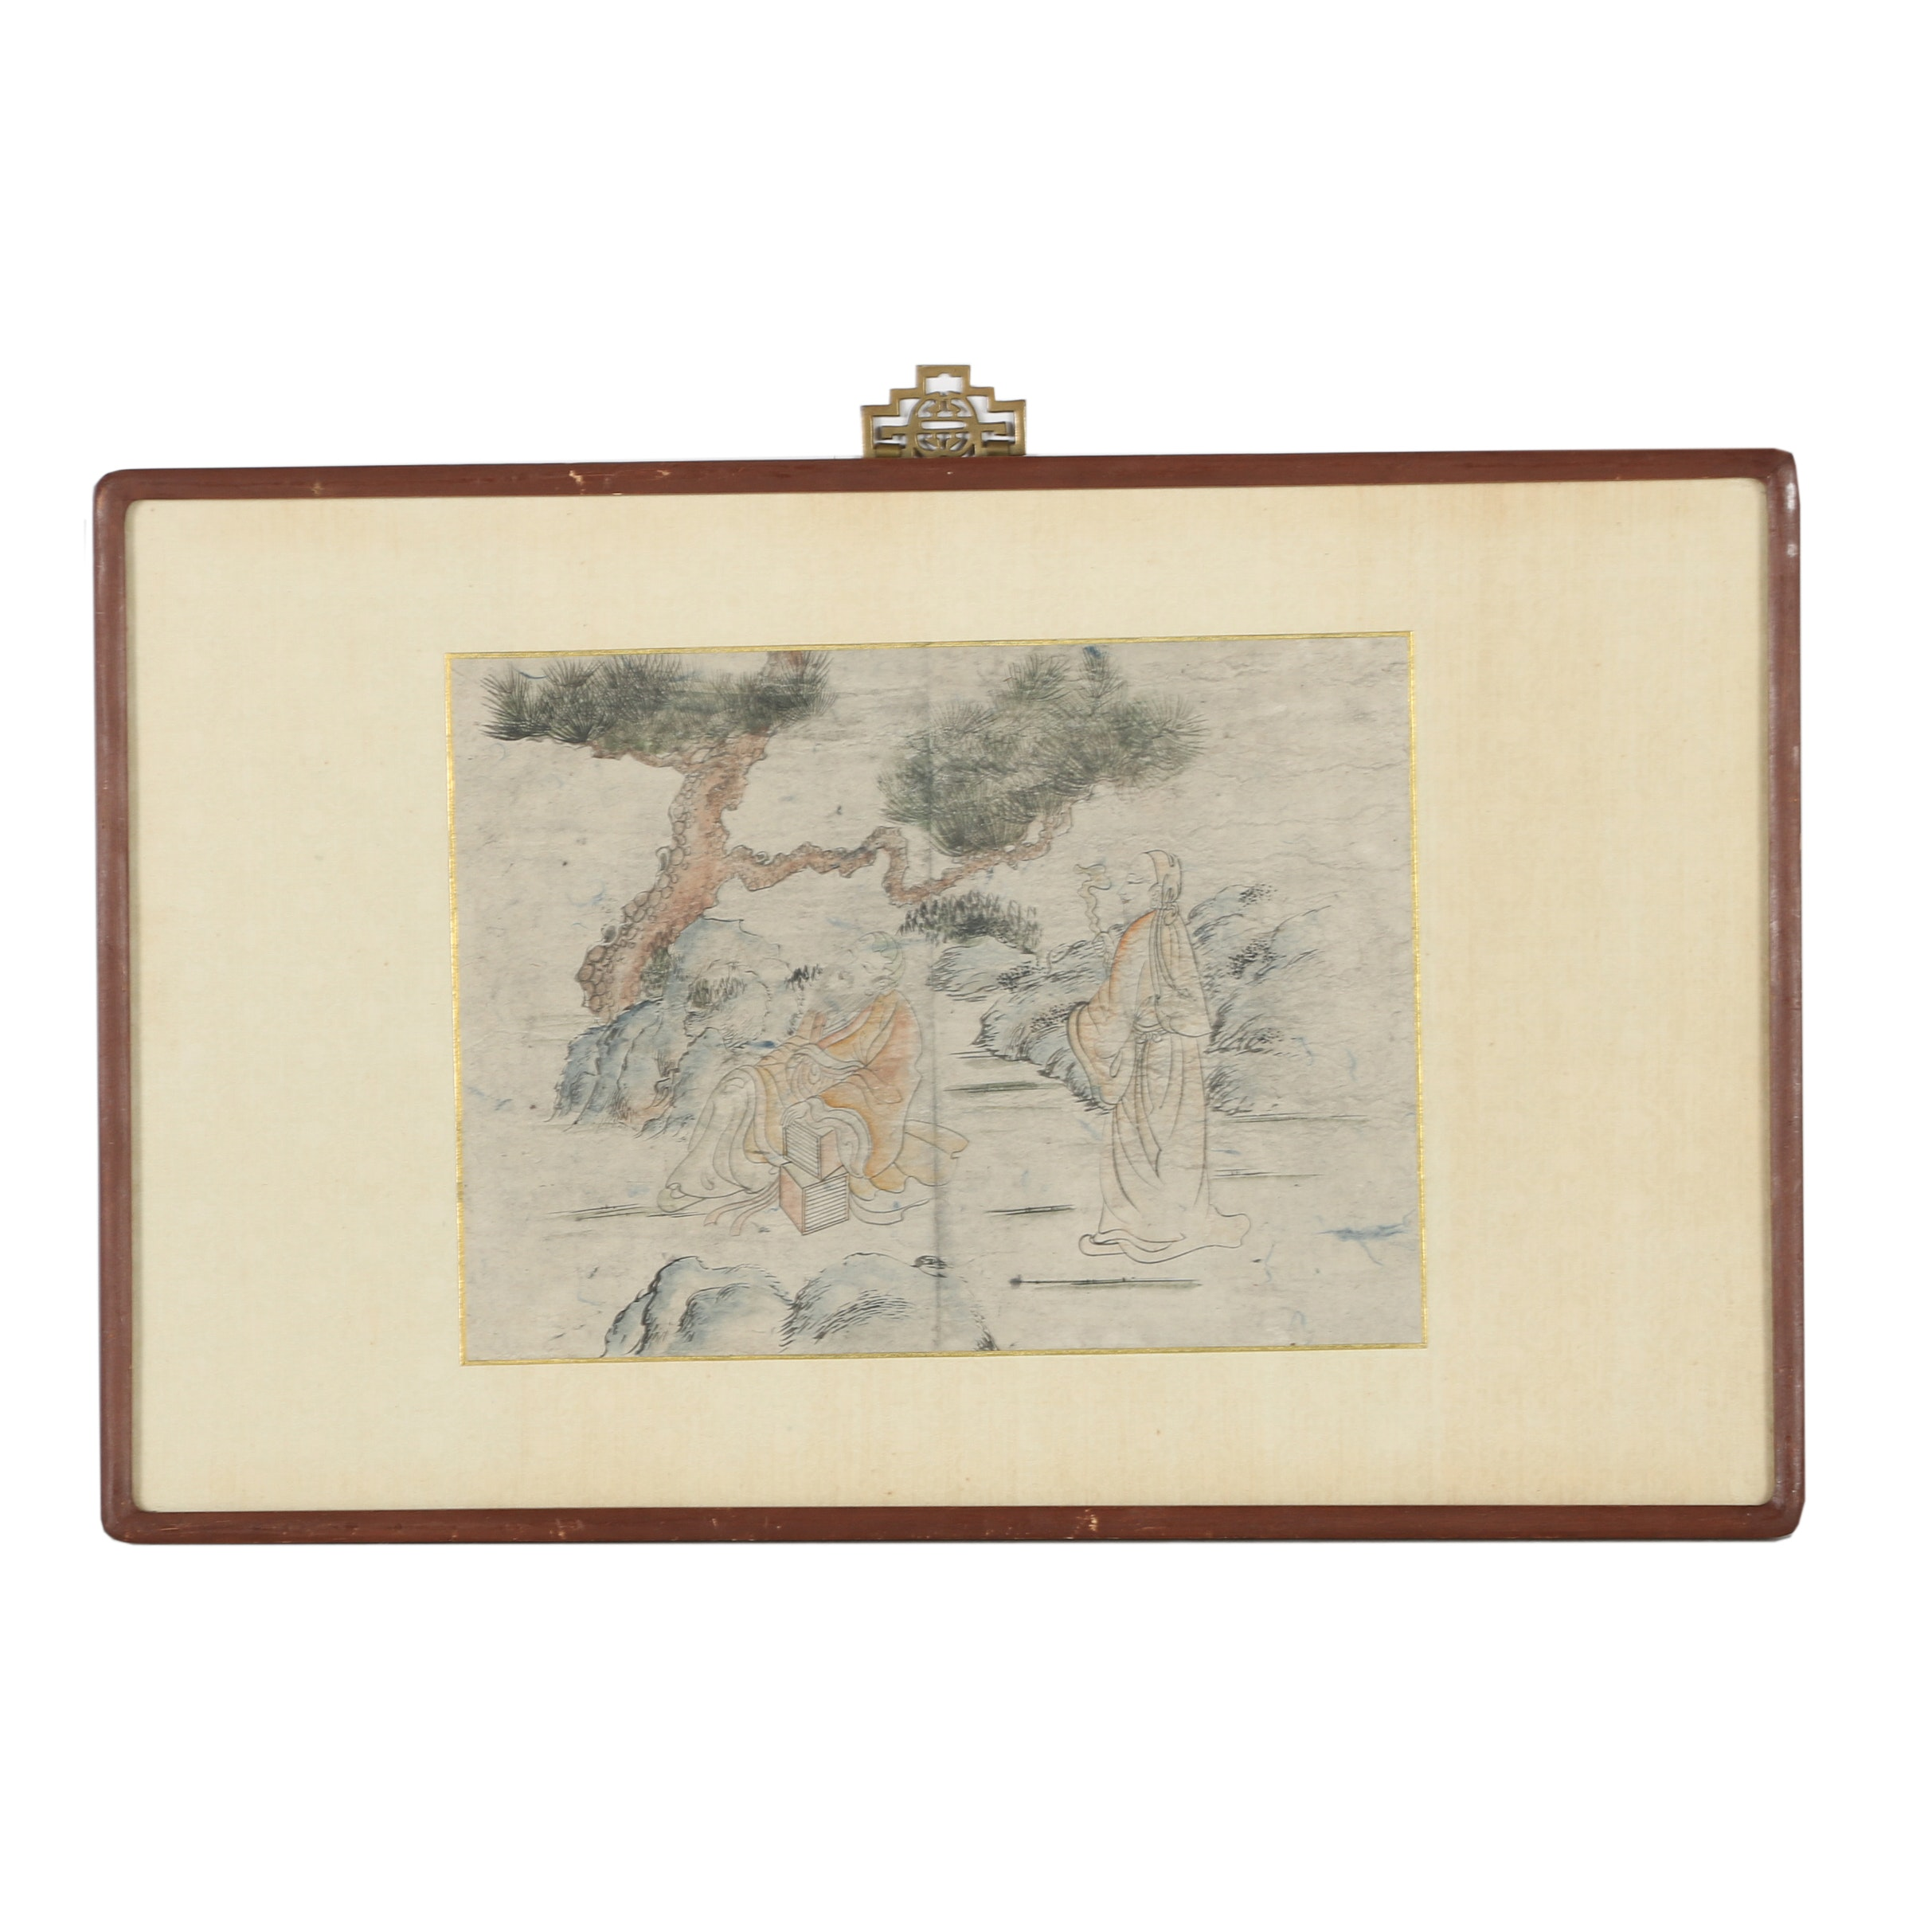 Chinese Watercolor Painting of Figures